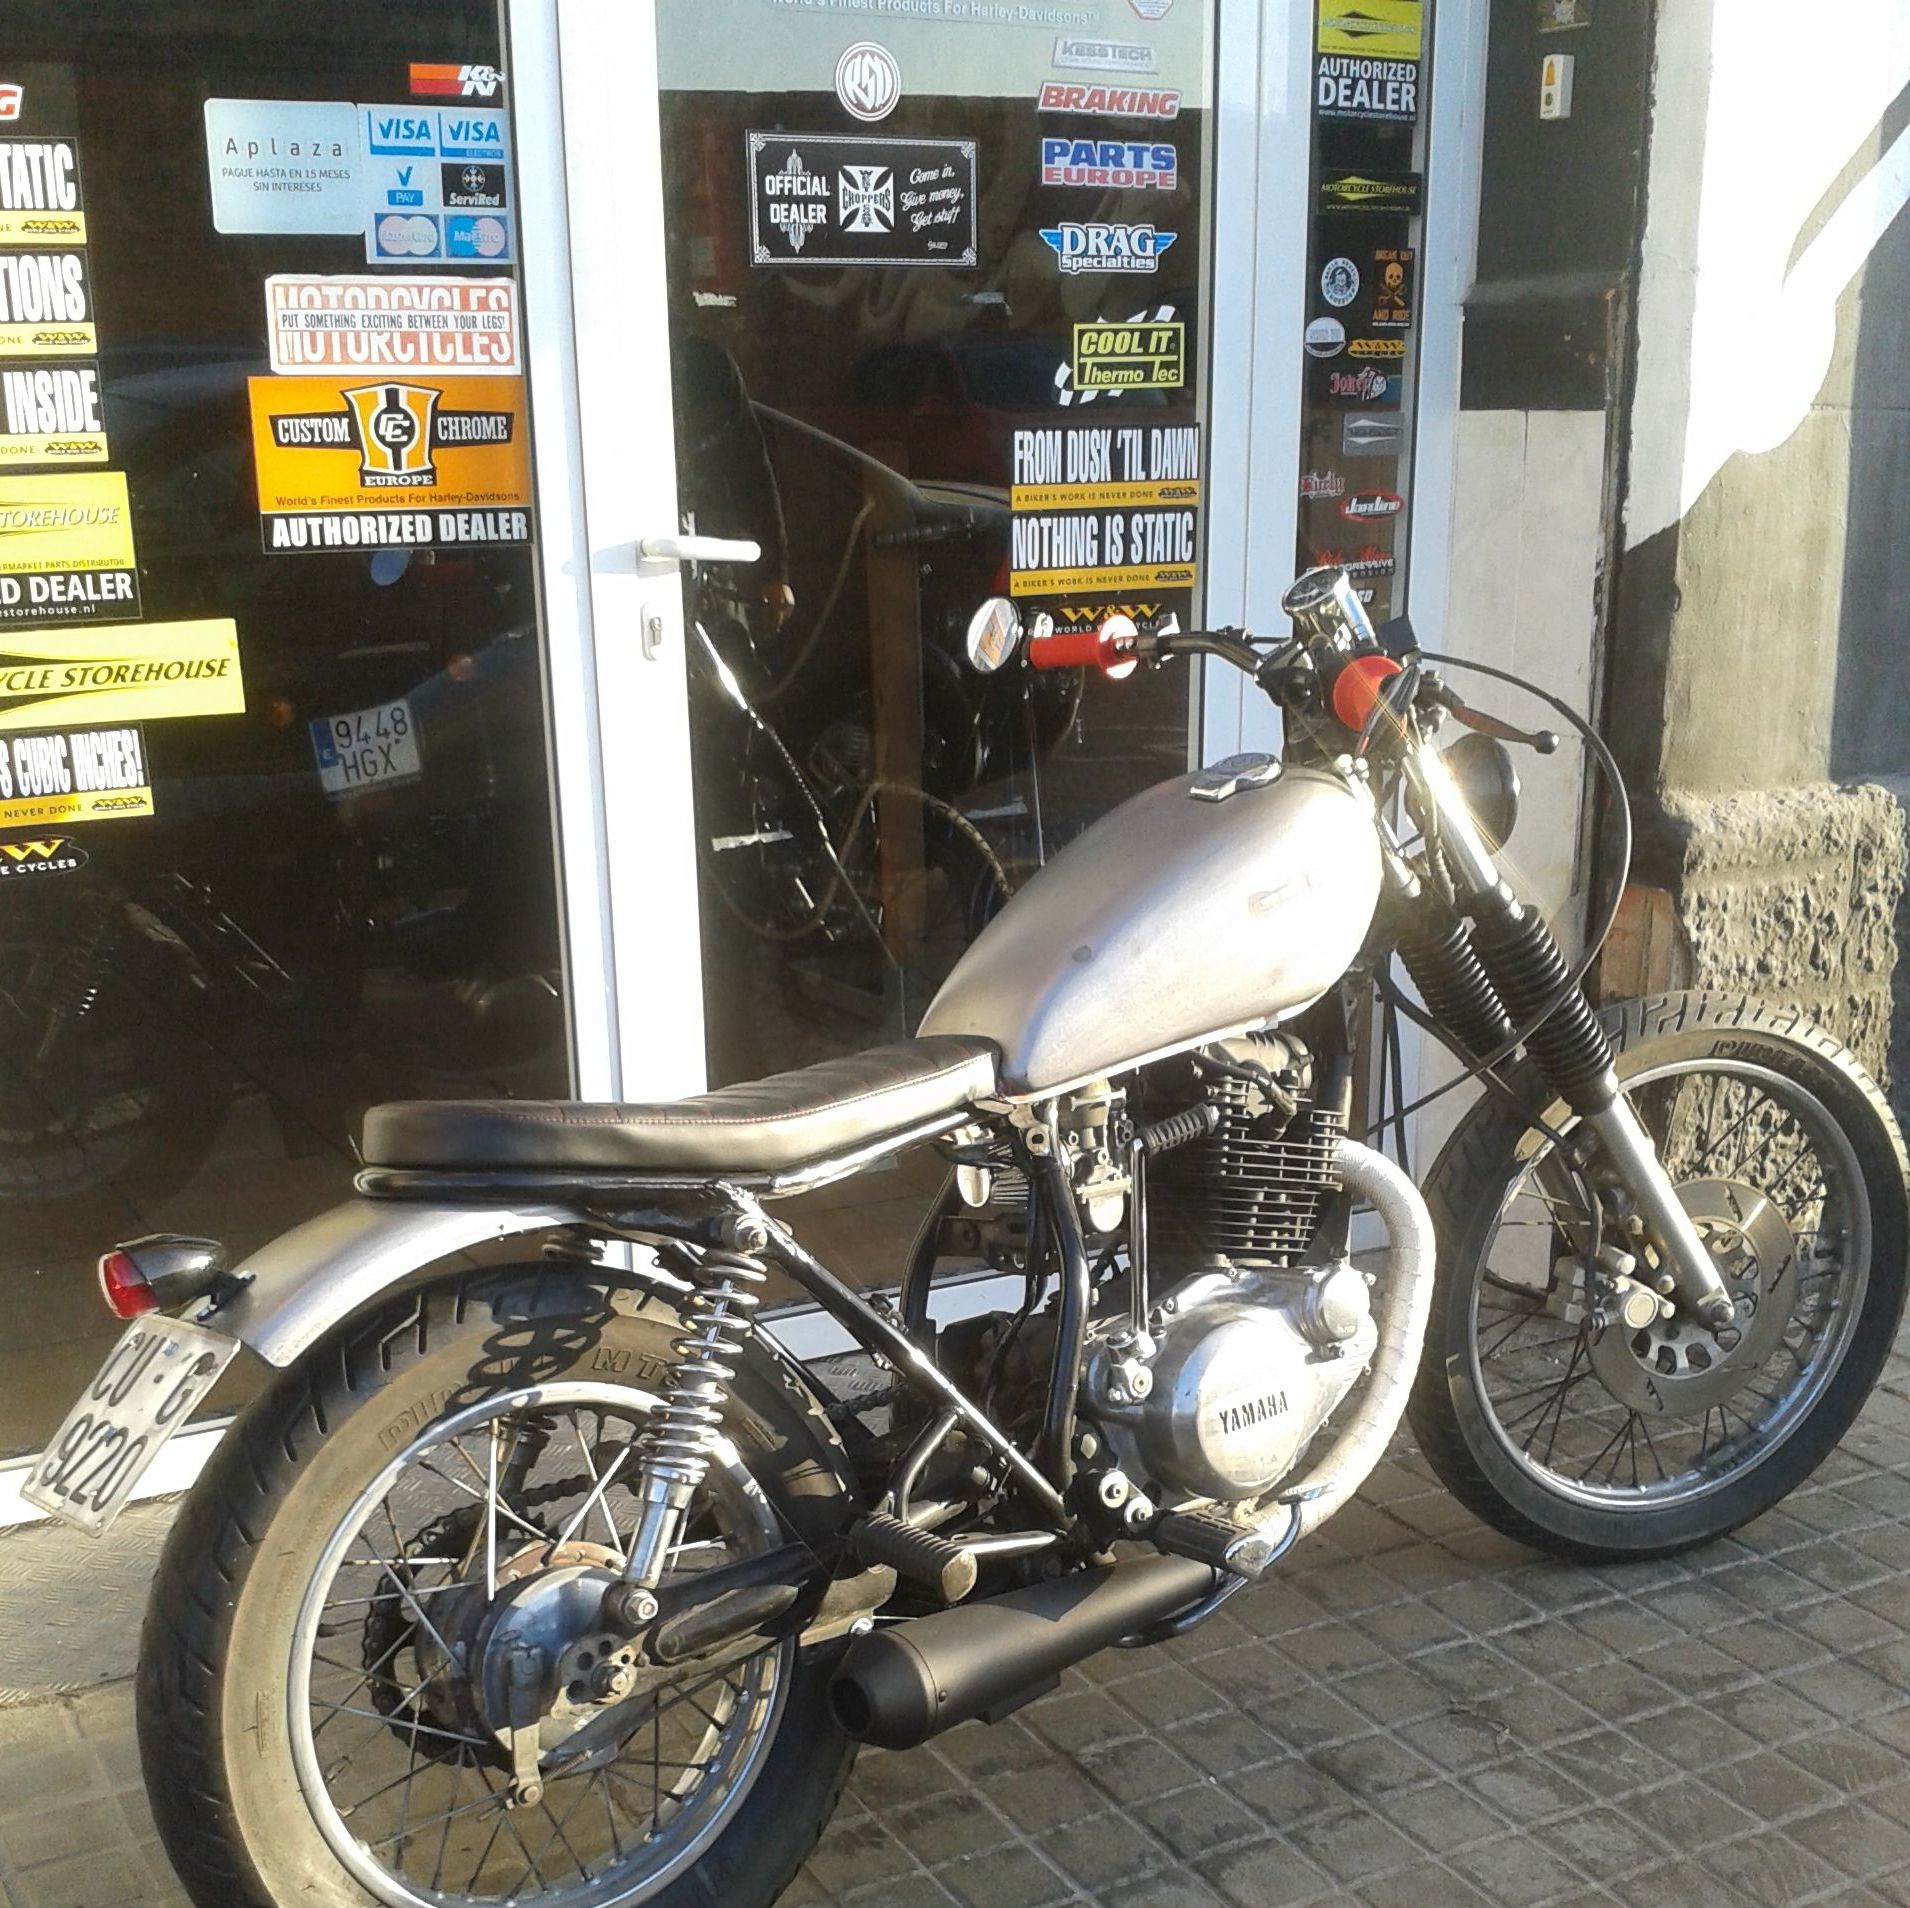 #customizar motos en valencia, customizar motos Madrid, transformacion yamaha sr250, sr250scramble, personalizar moto